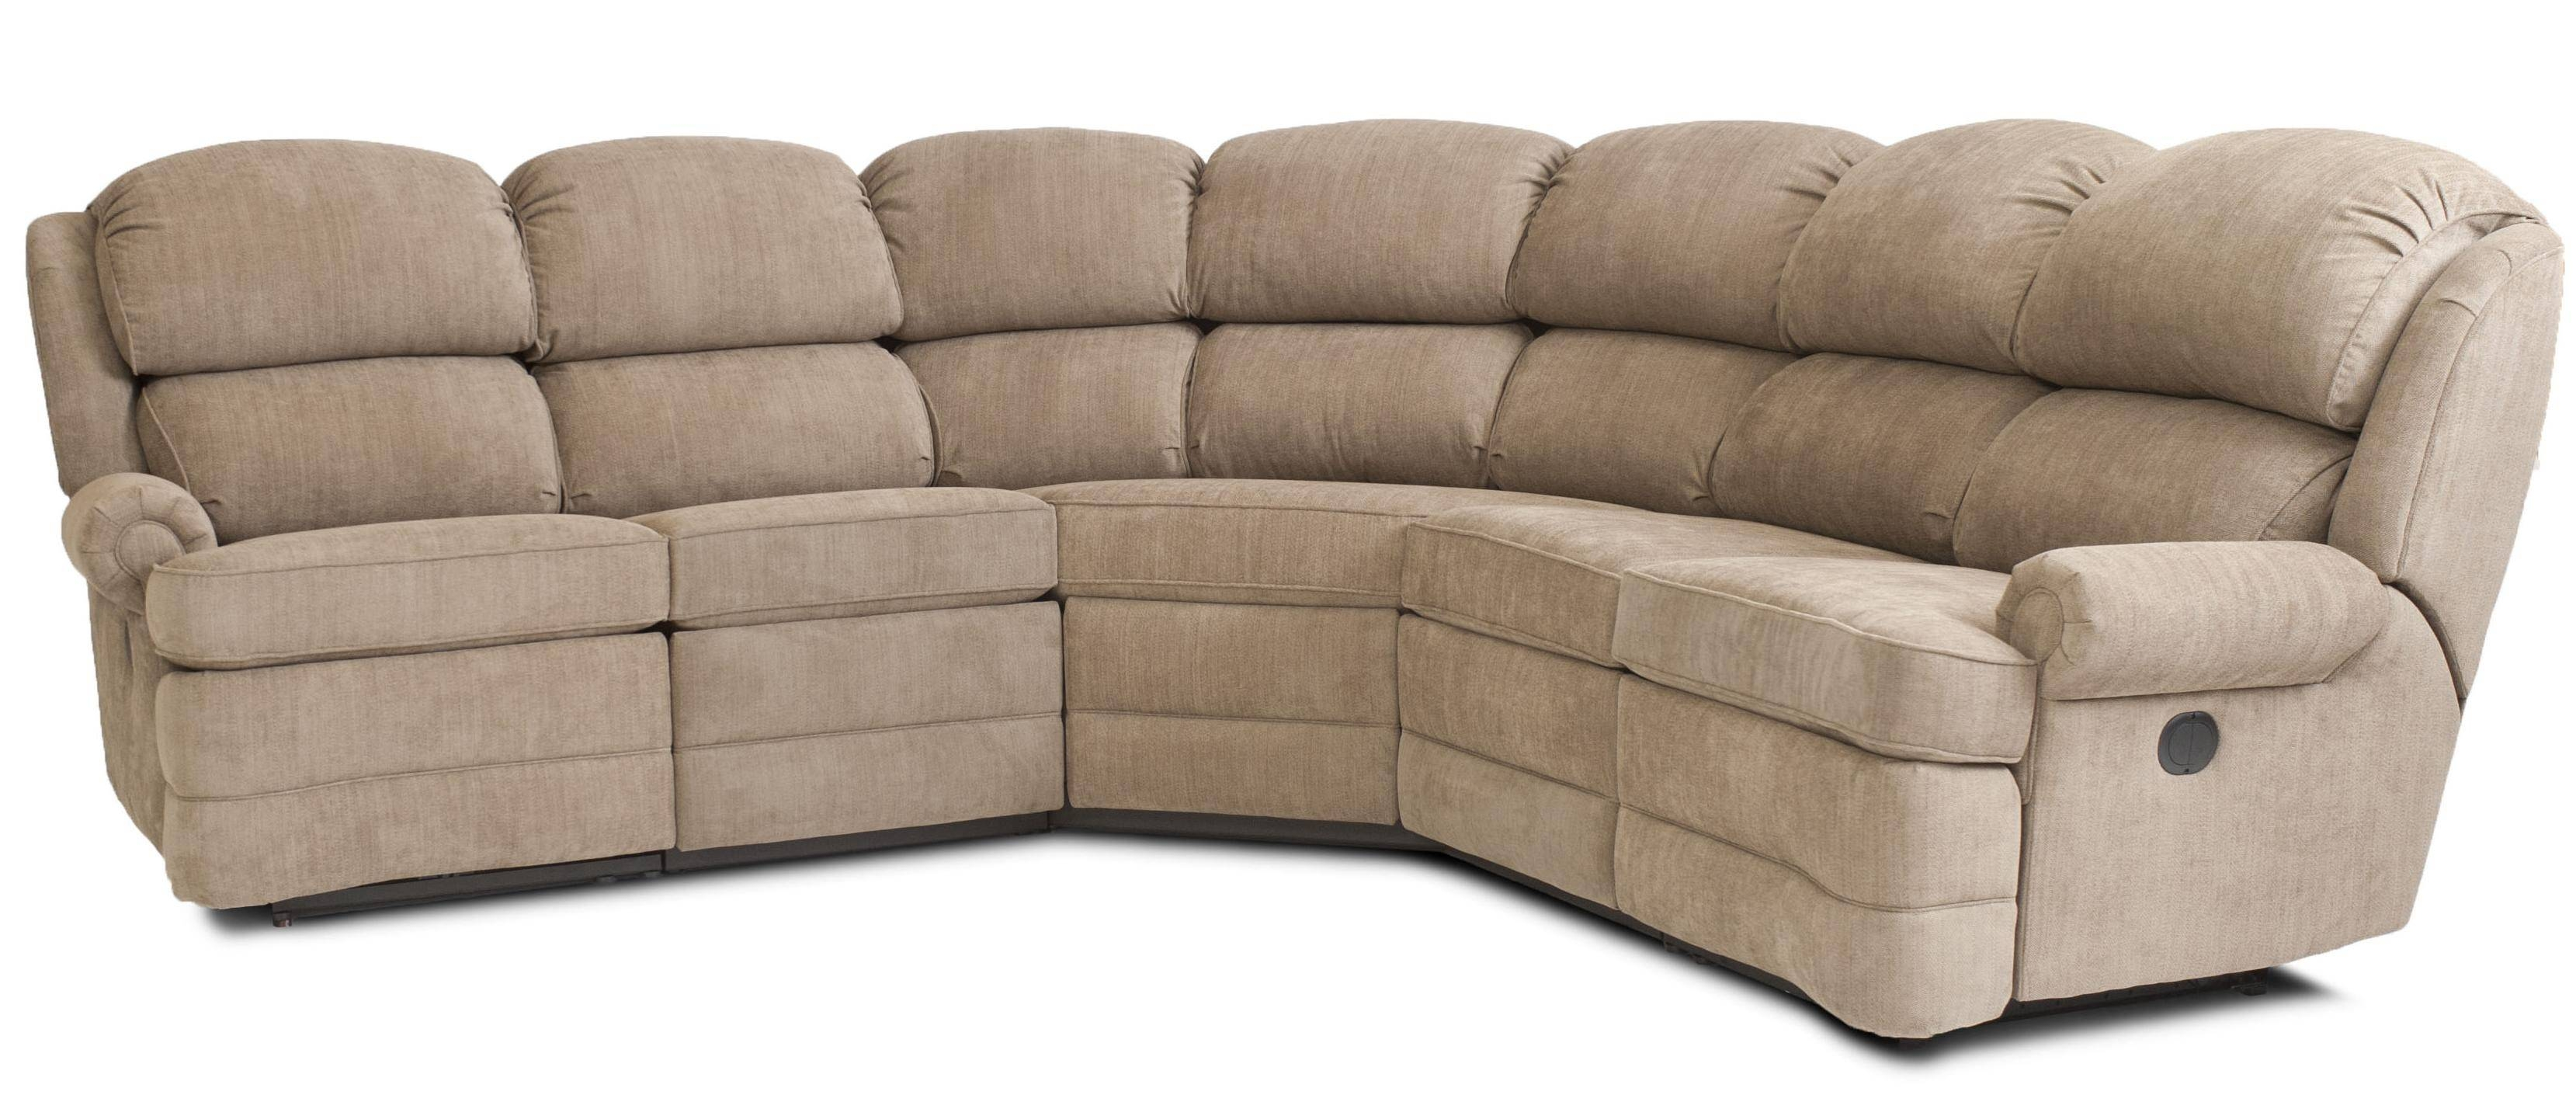 Furniture: Incredible Style Sectional Reclining Sofas For Your with Recliner Sectional Sofas (Image 14 of 30)